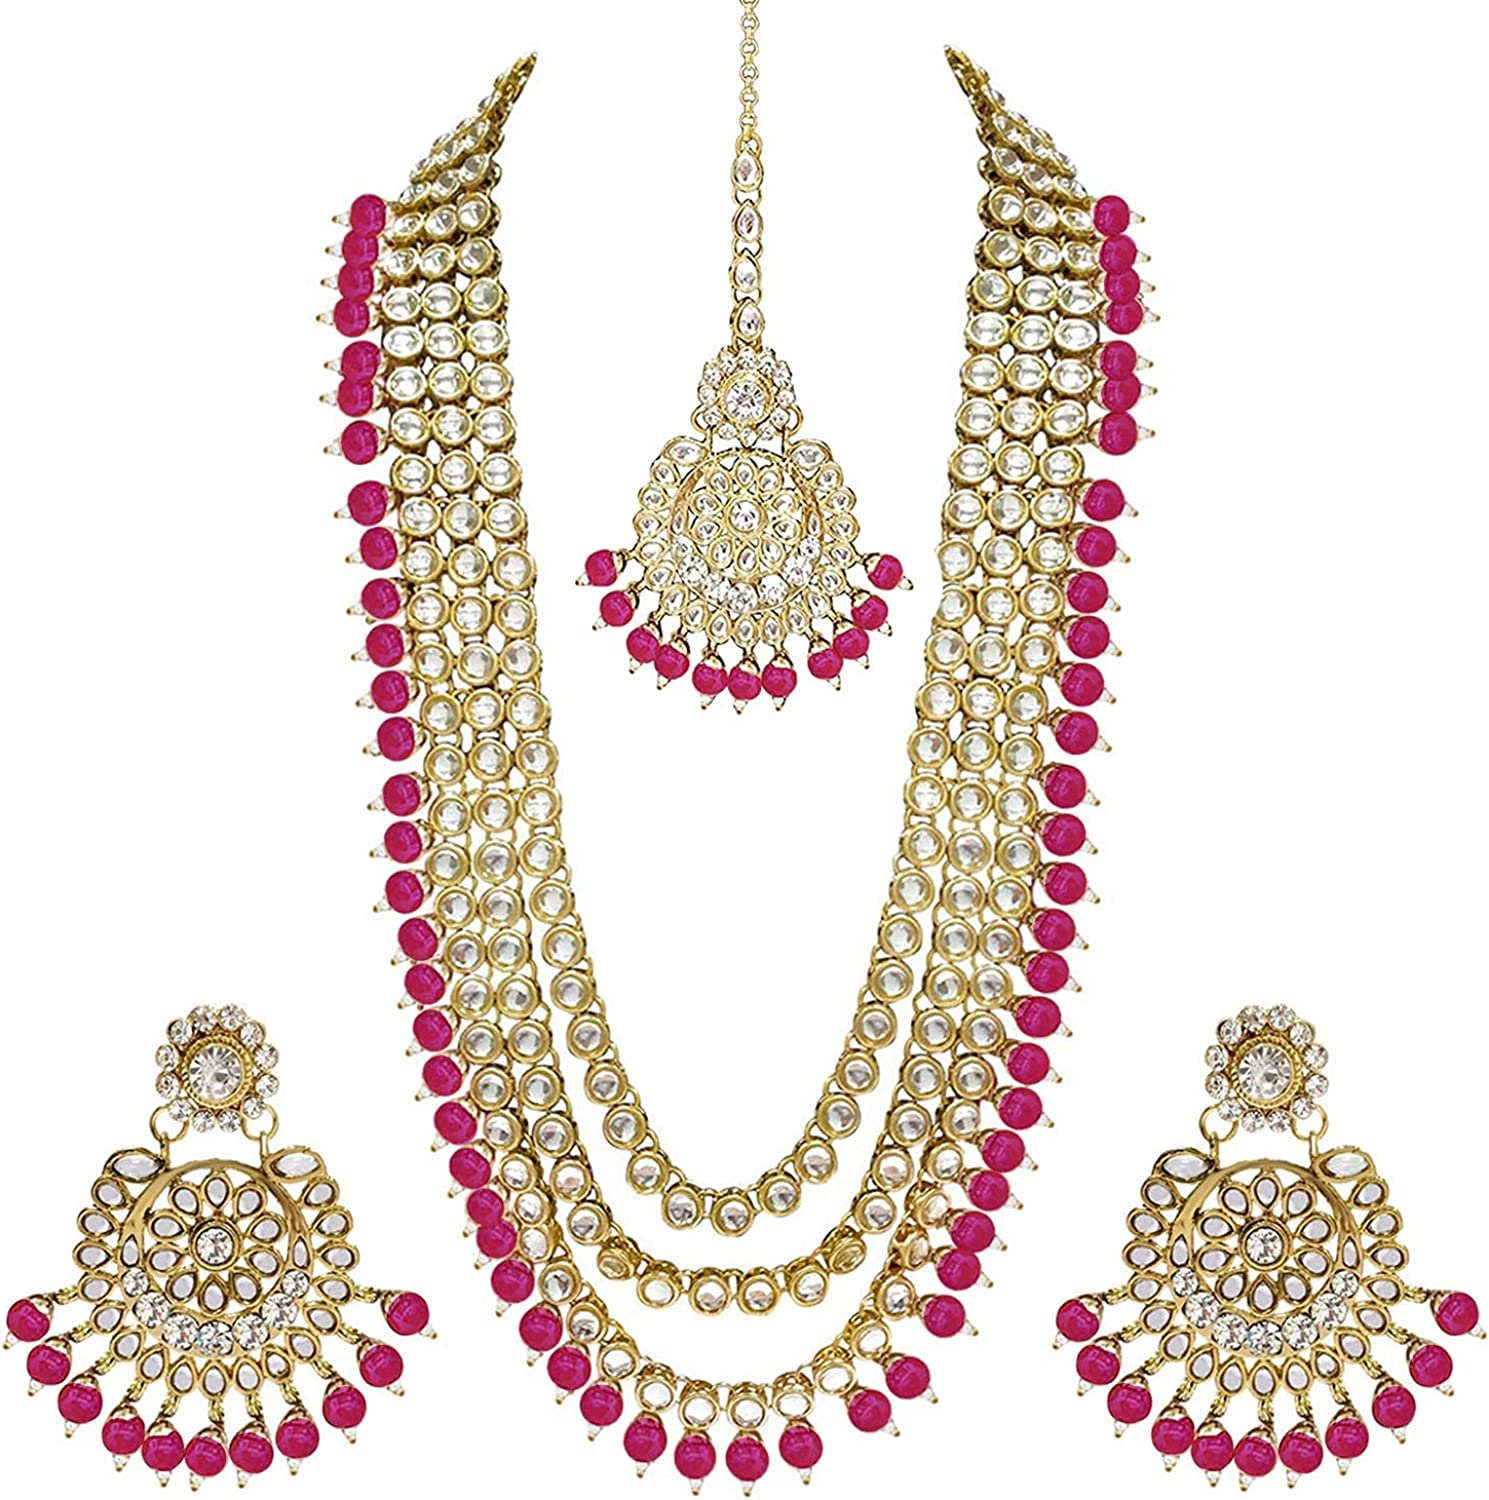 I Jewels 18k Gold Plated Indian Wedding Bollywood Kundan Pearl Beads Bridal Long Necklace Jewellery Set